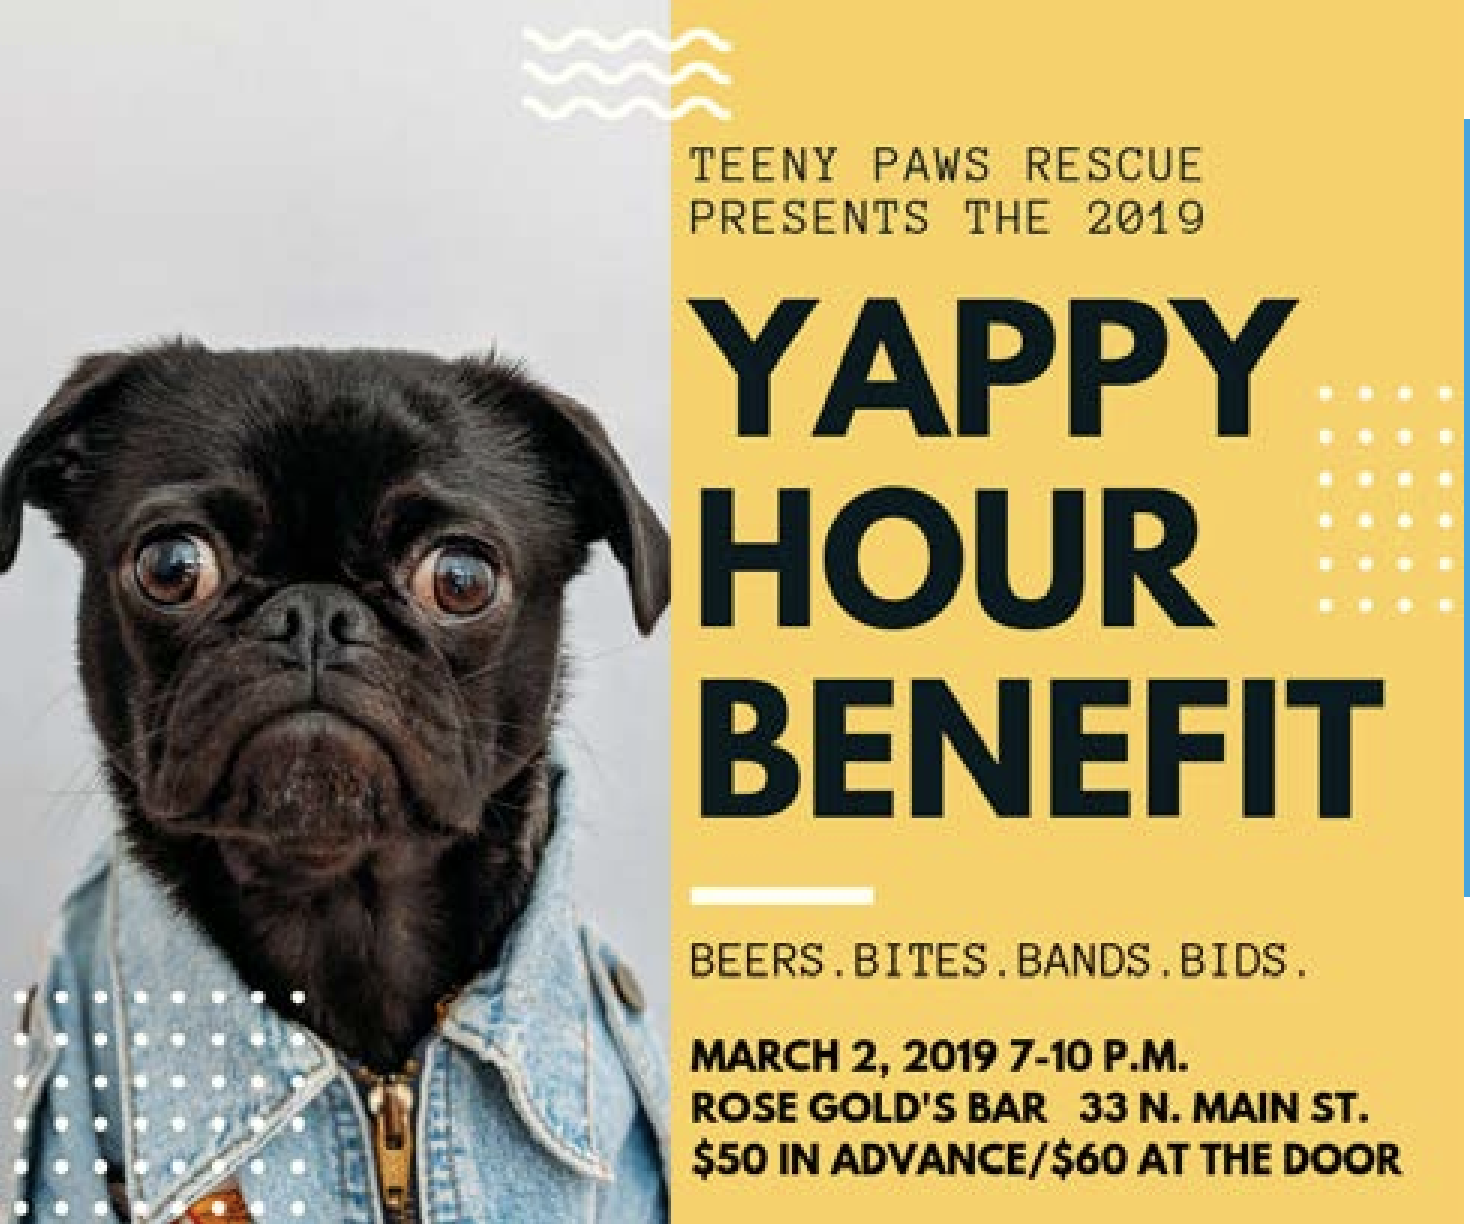 Yappy Hour Benefit